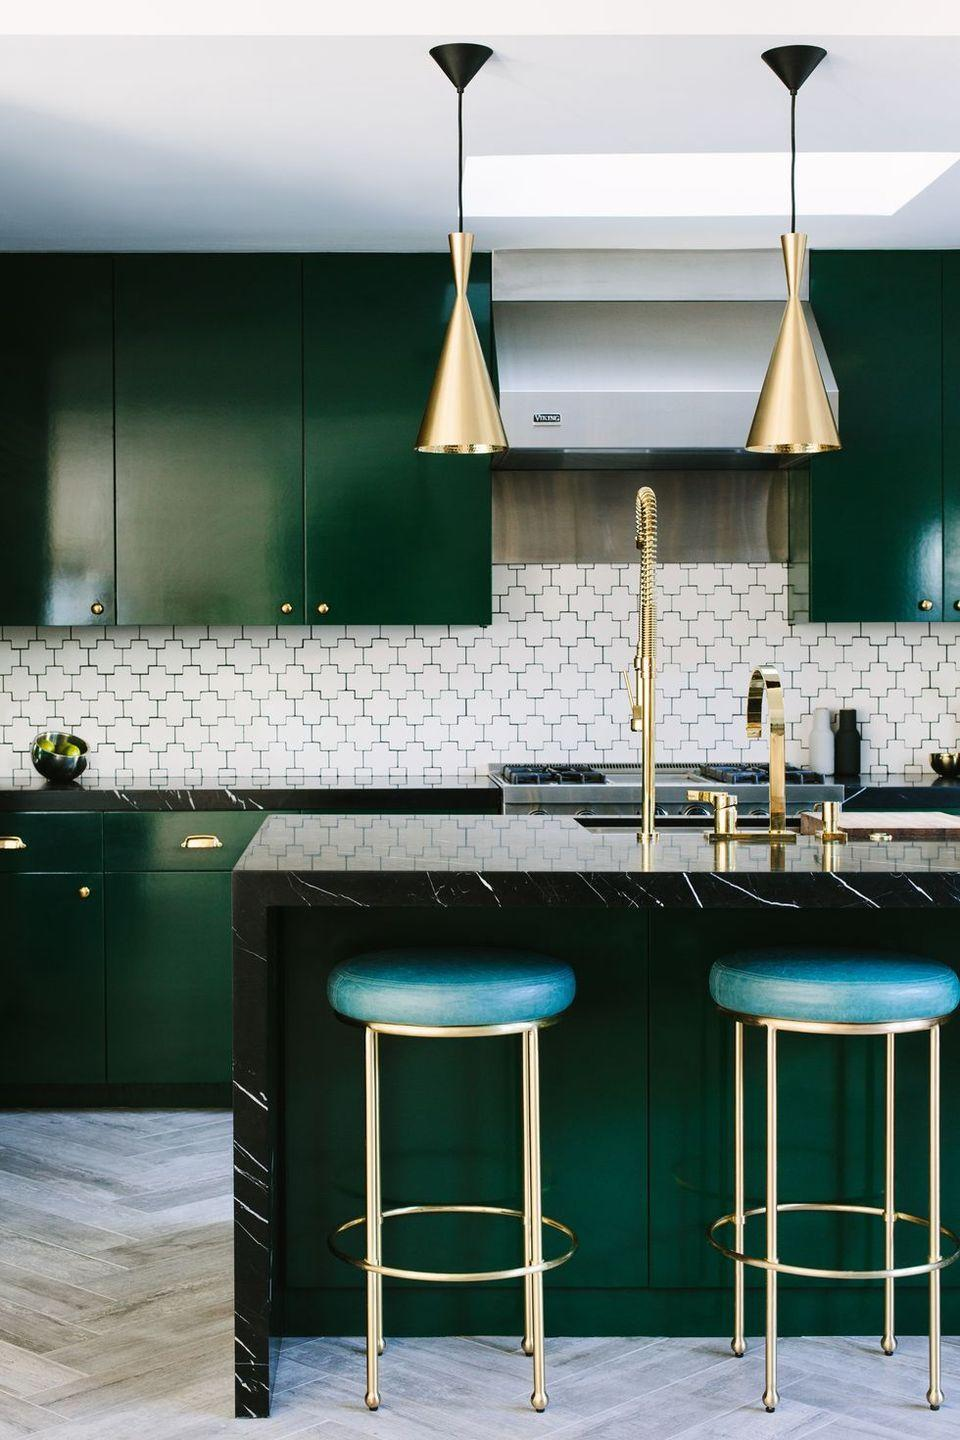 "<p>To bring contrast to this kitchen's daring cabinets and counters, Caitlin Murray of <a href=""http://www.blacklacquerdesign.com/"" rel=""nofollow noopener"" target=""_blank"" data-ylk=""slk:Black Lacquer Design"" class=""link rapid-noclick-resp"">Black Lacquer Design</a> opted for a modern geometric backsplash. </p>"